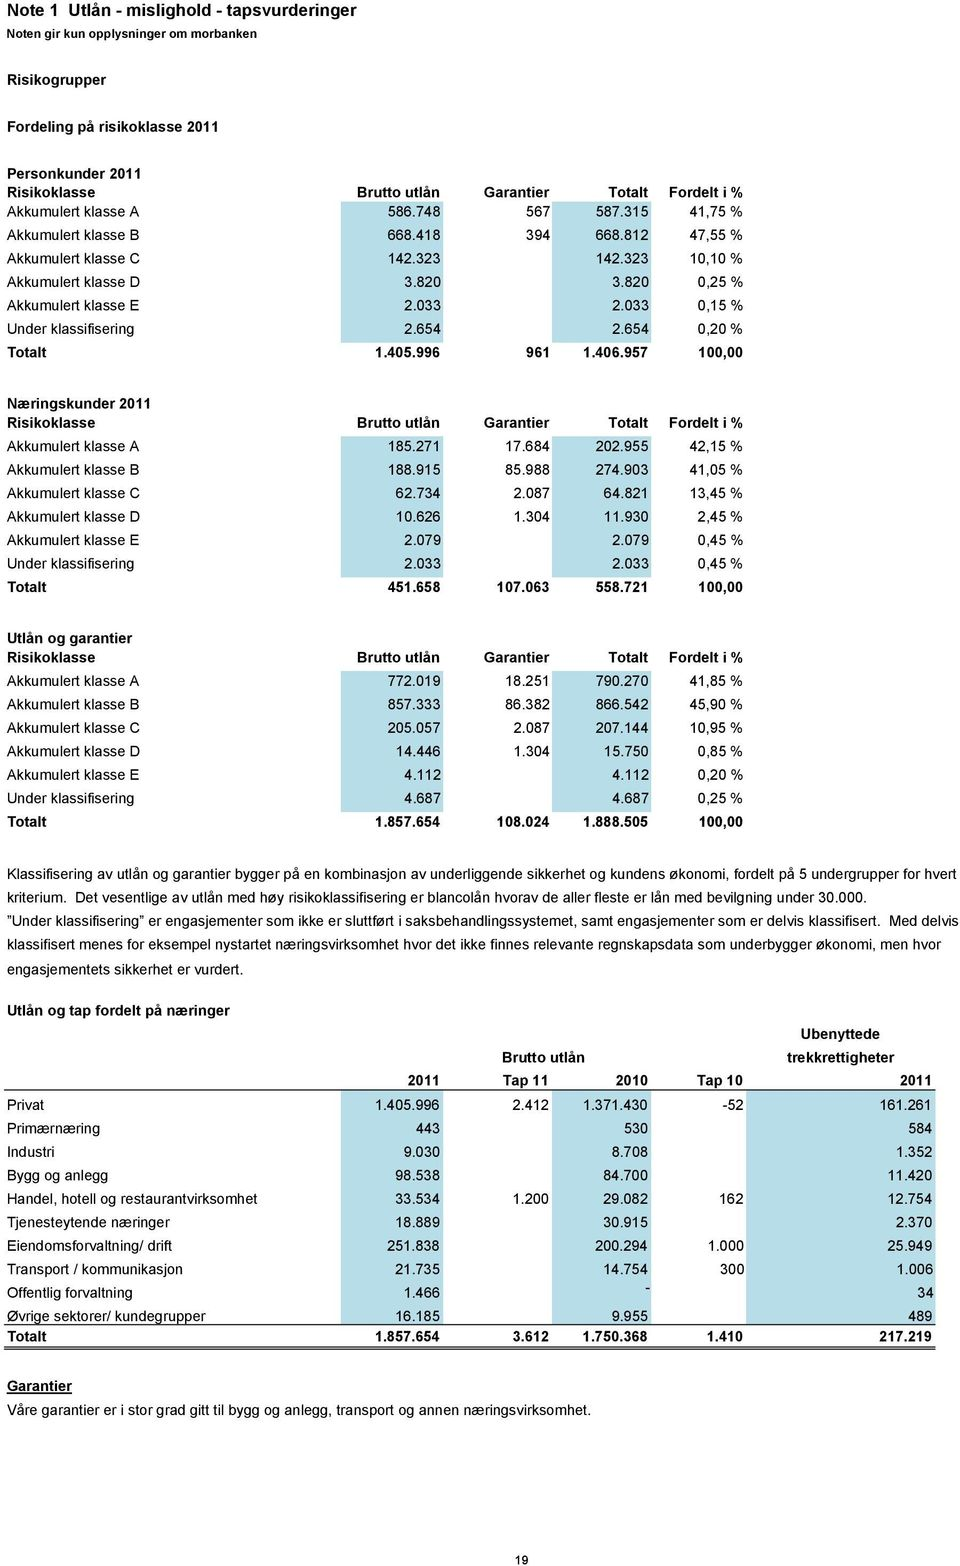 820 0,25 % Akkumulert klasse E 2.033 2.033 0,15 % Under klassifisering 2.654 2.654 0,20 % Totalt 1.405.996 961 1.406.